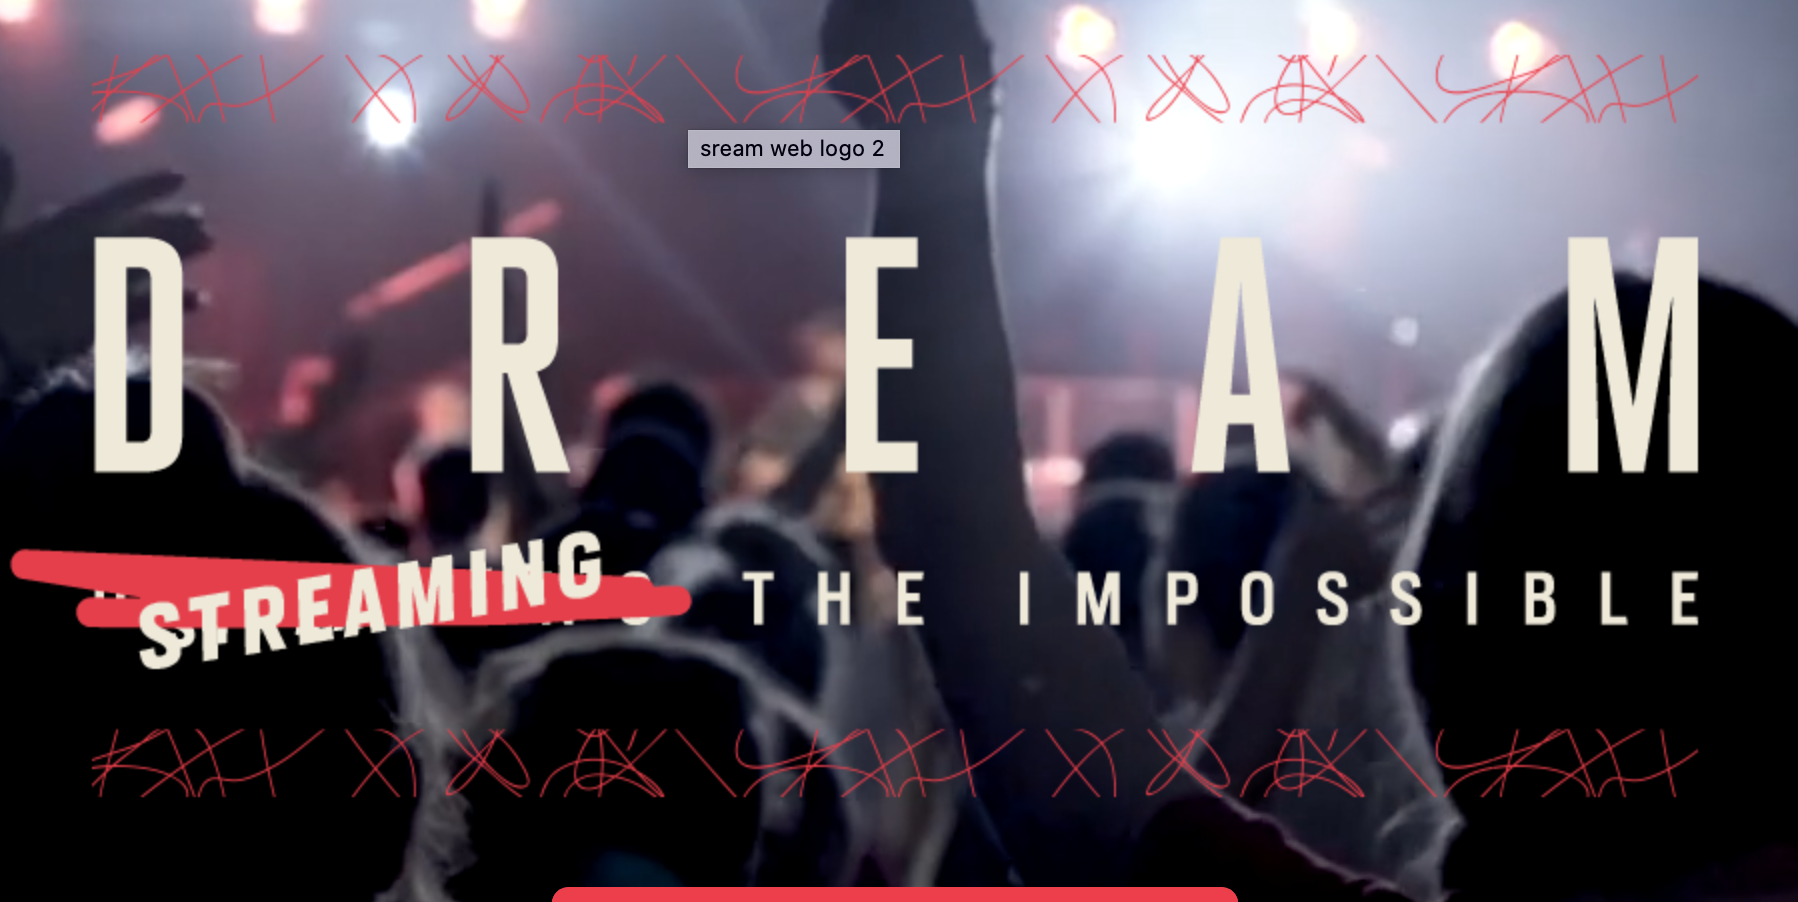 DTI (Dreaming The Impossible) 31 July-1 August 2020